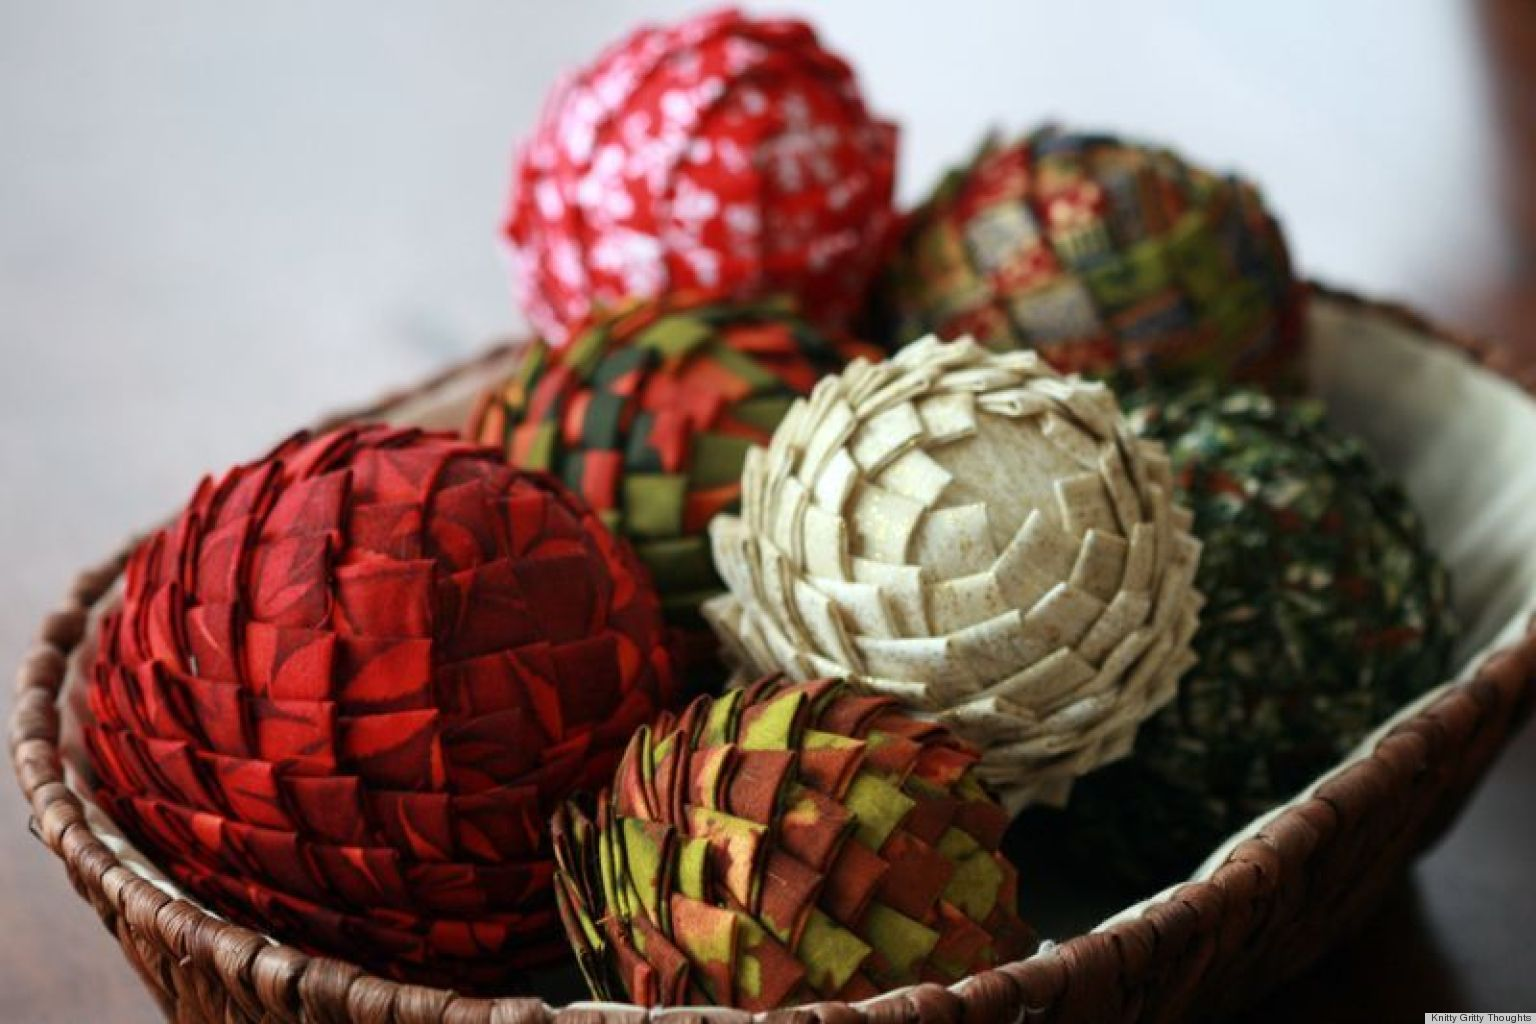 Ideas For Christmas Craft Part - 46: Christmas Craft Ideas: Fabric And Styrofoam Pine Cone Vase Fillers |  HuffPost